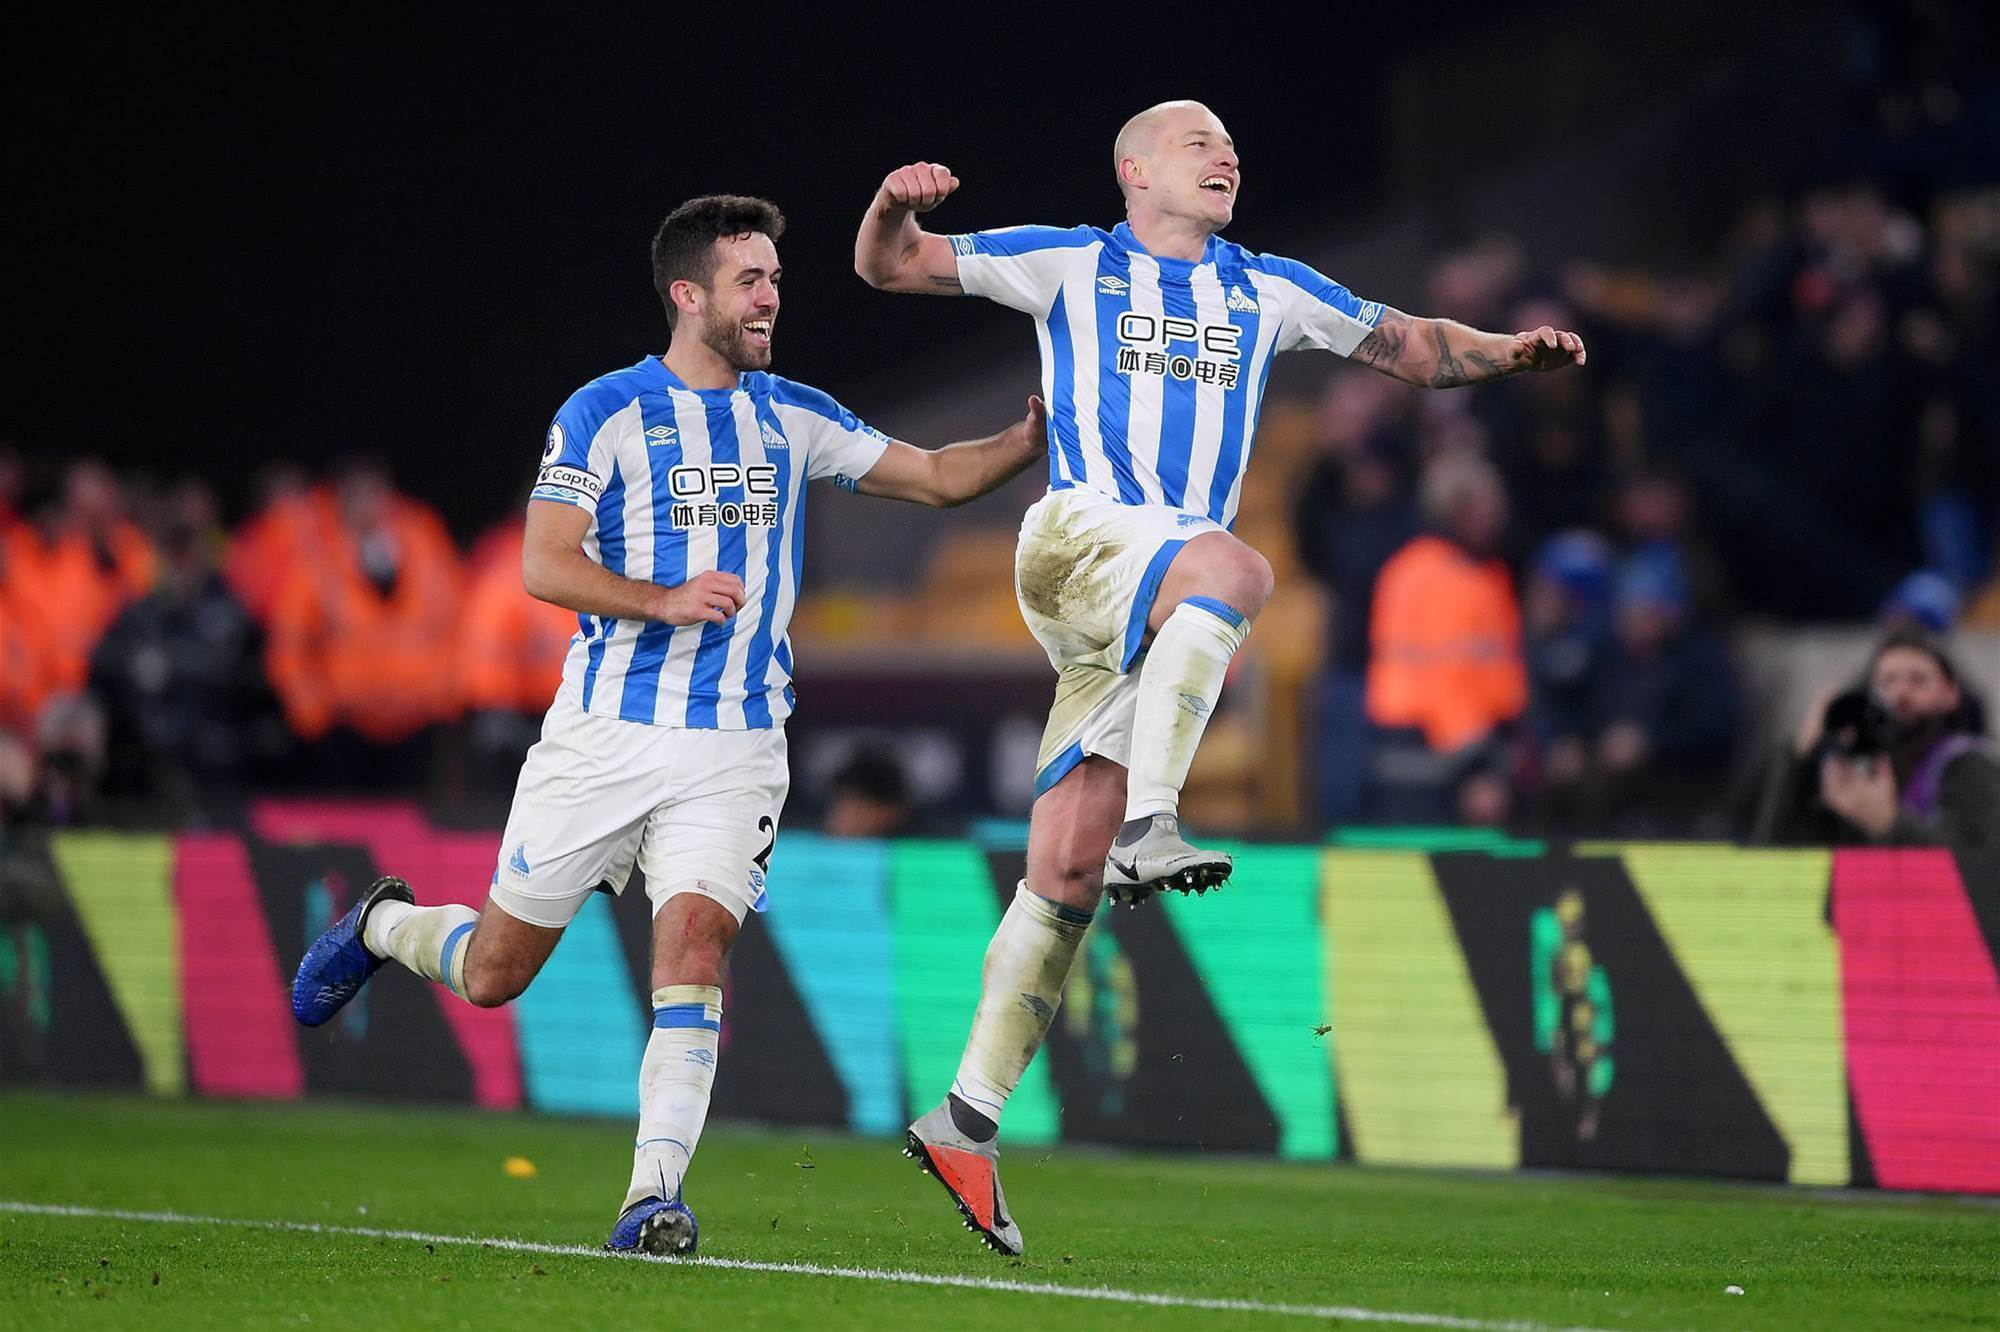 'Best in the Prem' Mooy receives TOTW-treatment